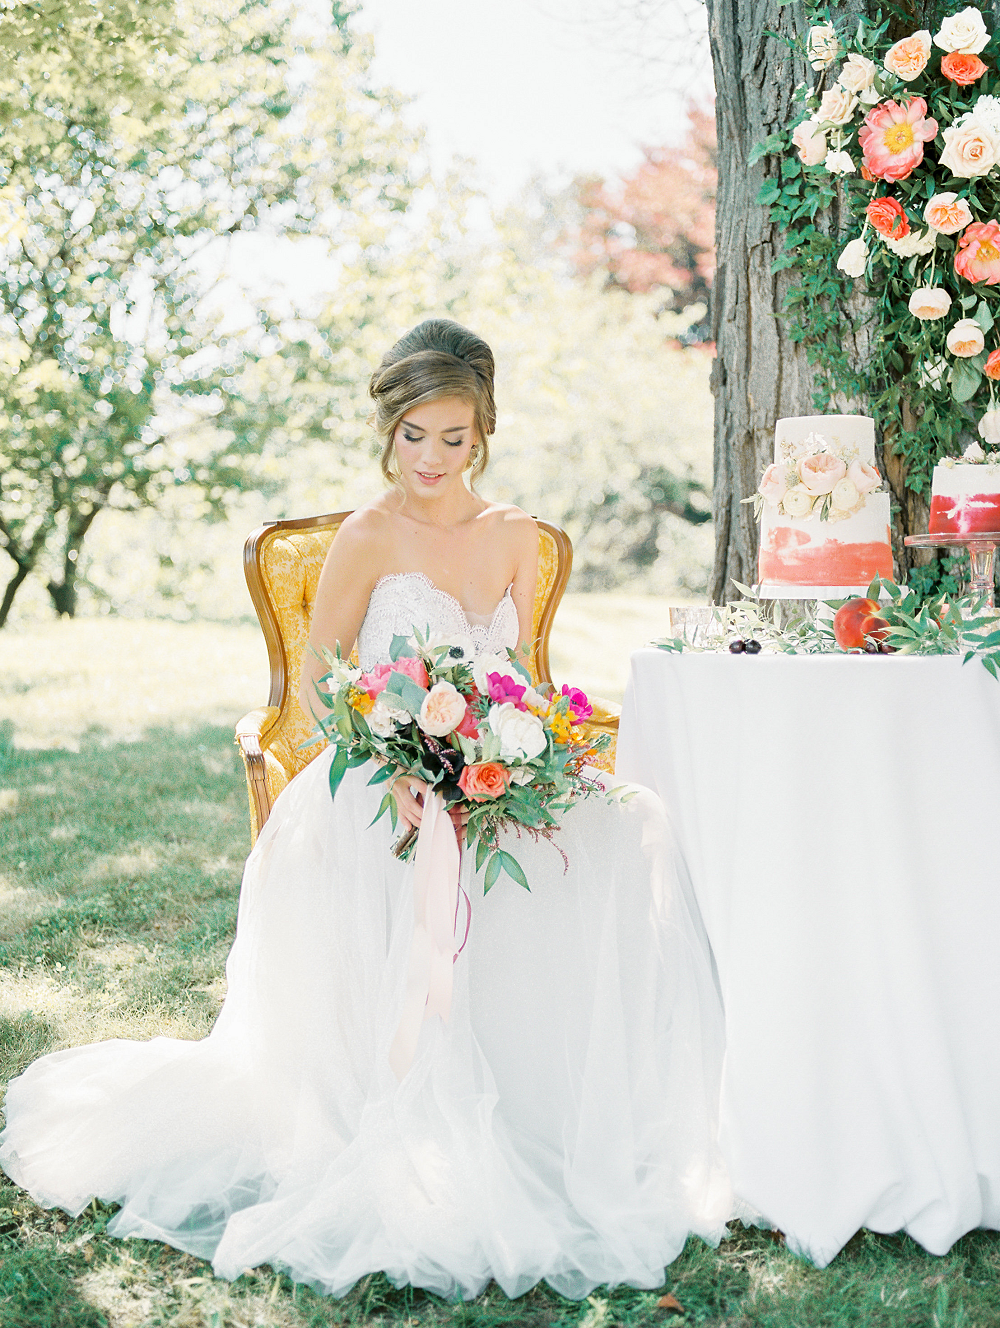 Whimsical Summer Wedding Styled Shoot at Henderson Castle Featured in WeddingDay Magazine Bridal Portrait